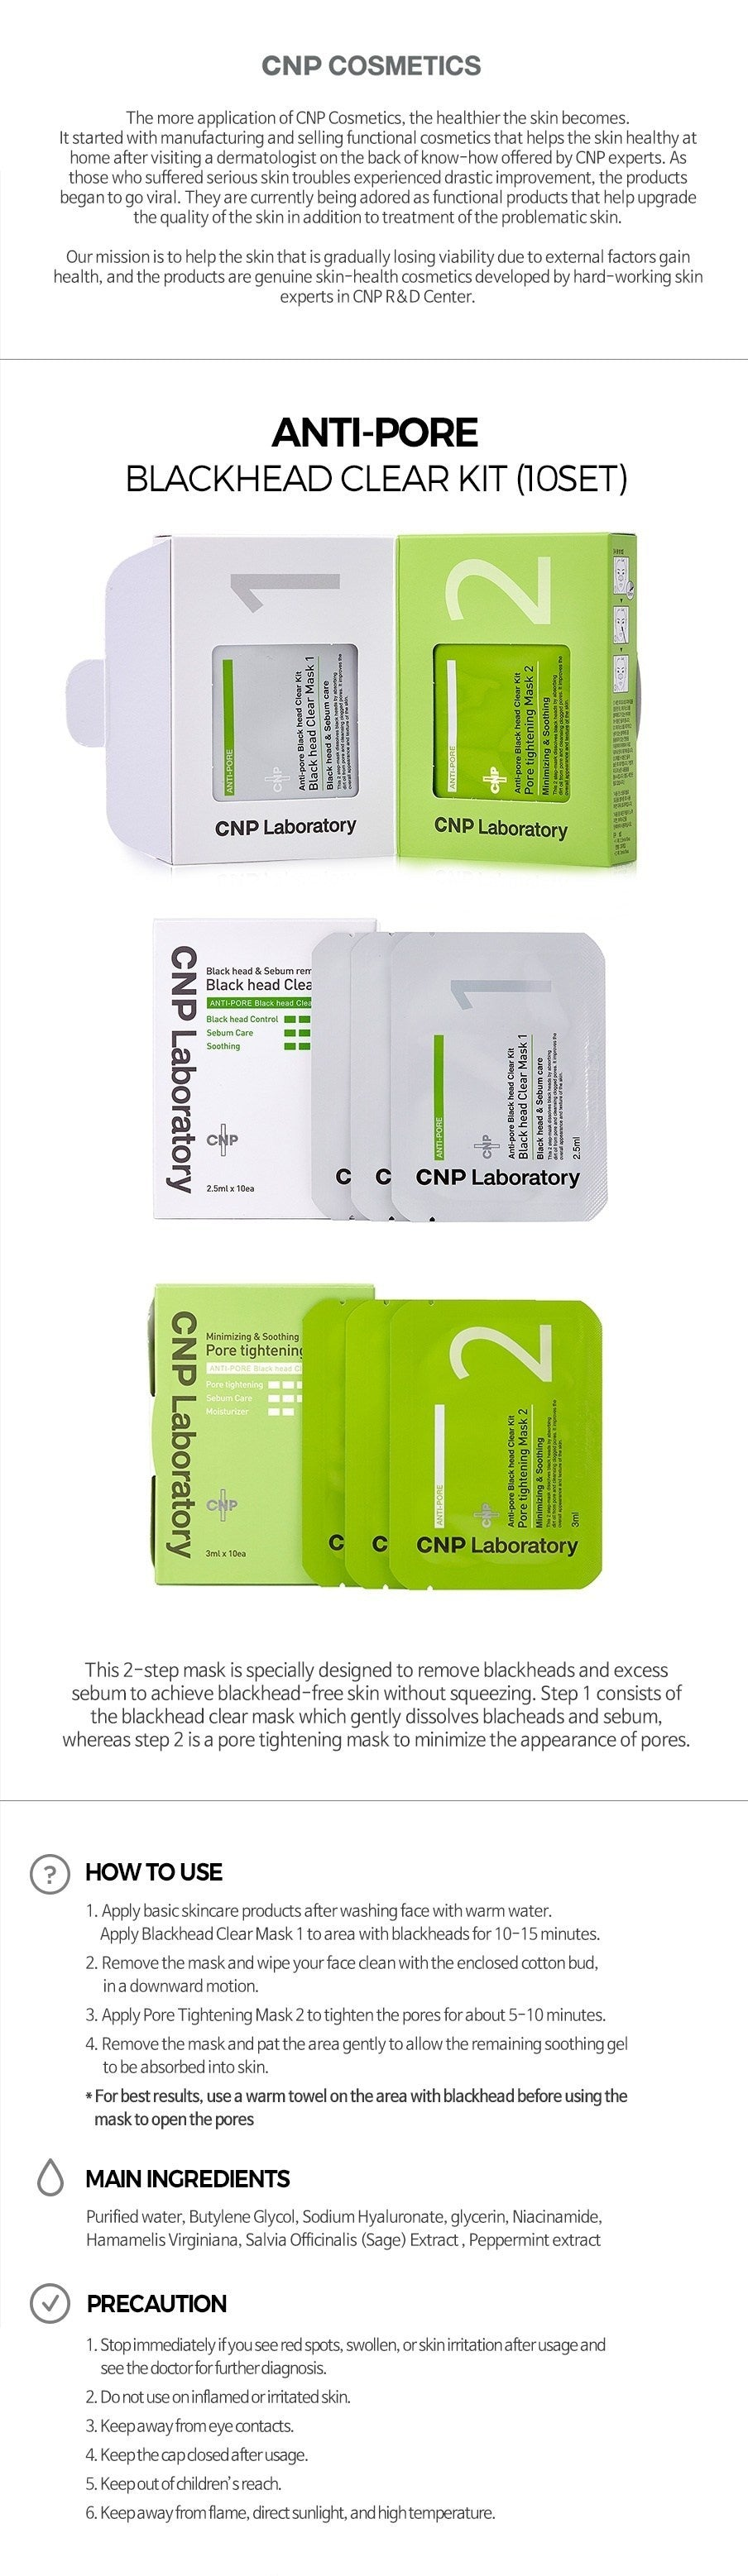 CNP Laboratory Anti-Pore Black Head Clear Kit (Black Head Clear & Pore Tightening Mask)